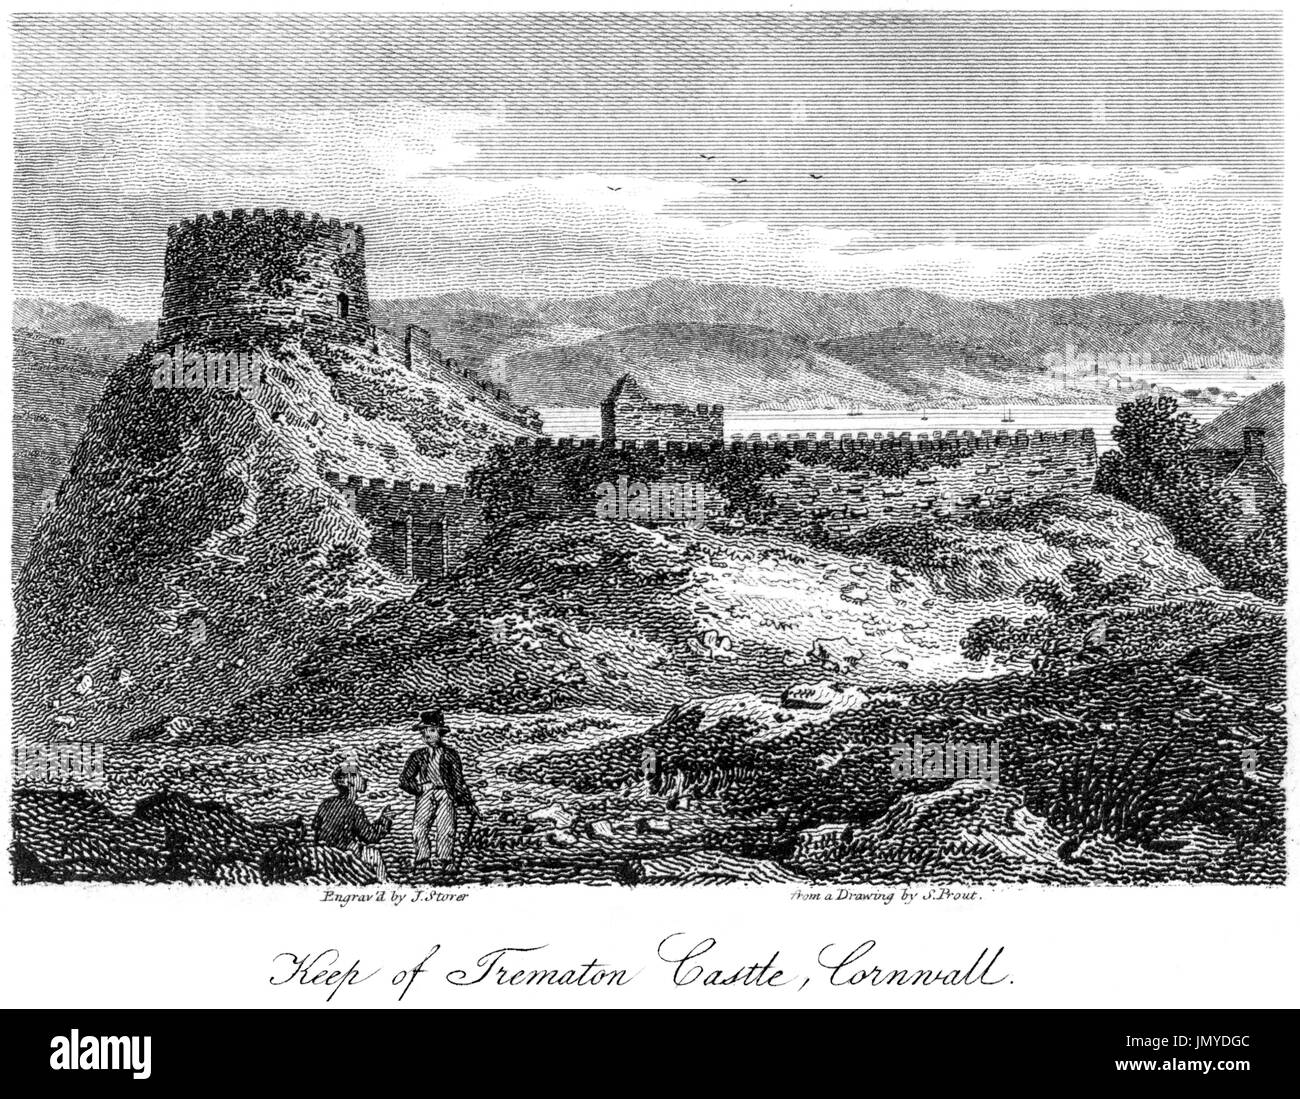 An engraving of the Keep of Trematon Castle, Cornwall scanned at high resolution from a book printed in 1808.  Believed copyright free. - Stock Image